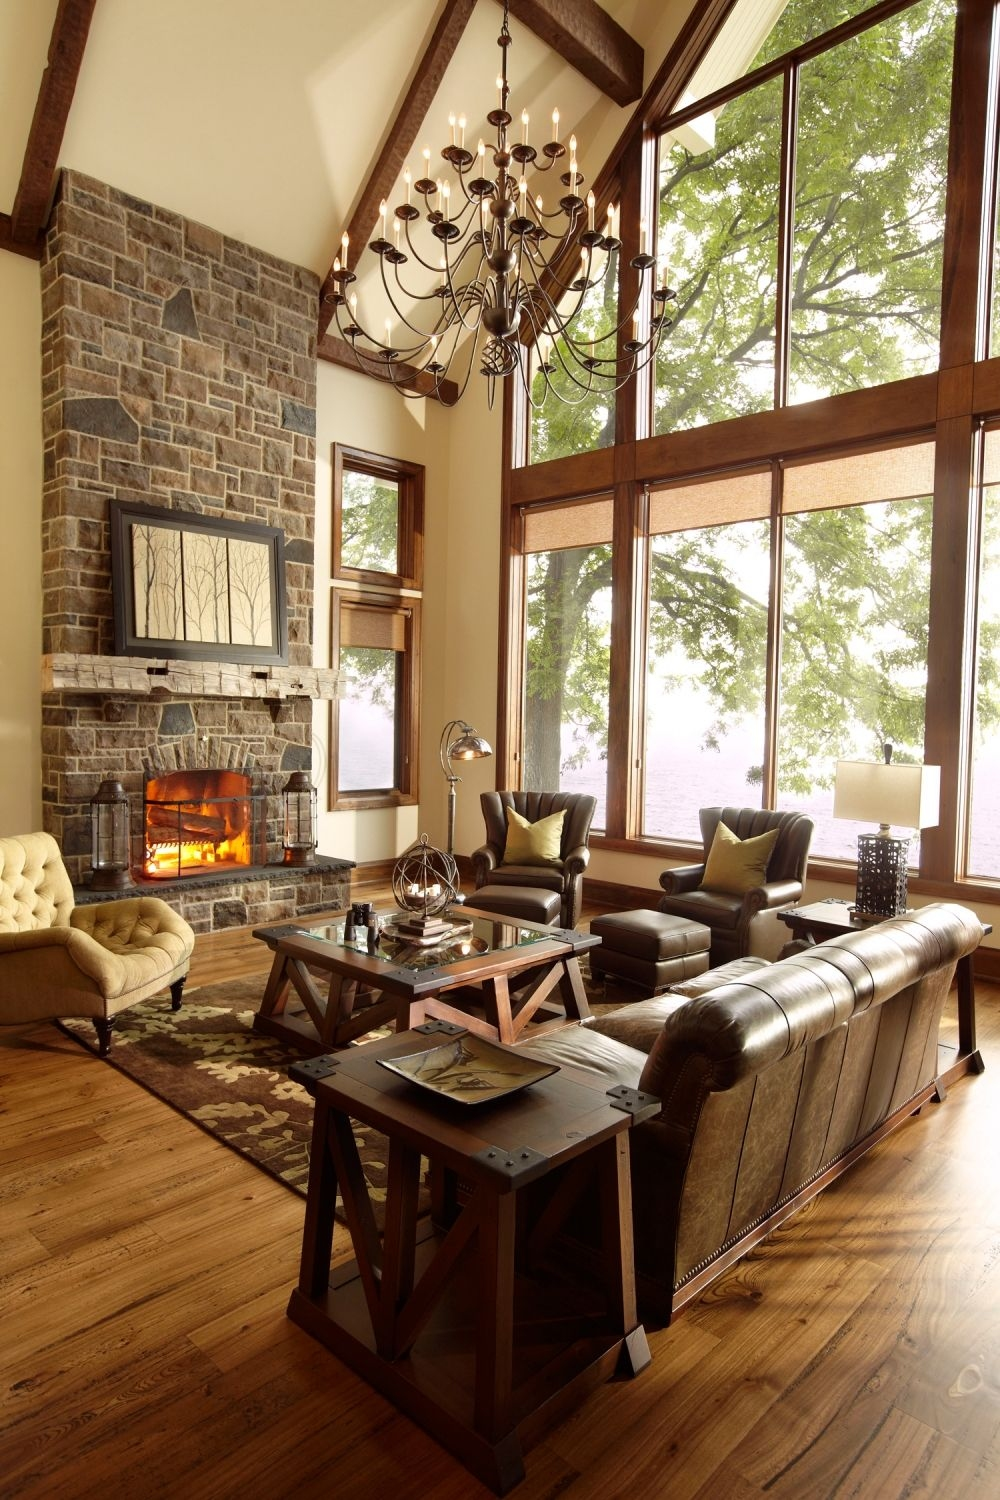 Rustic Mountain House Plans with Walkout Basement Awesome Beautiful Wide Open Living Room with Spectacular Windows the